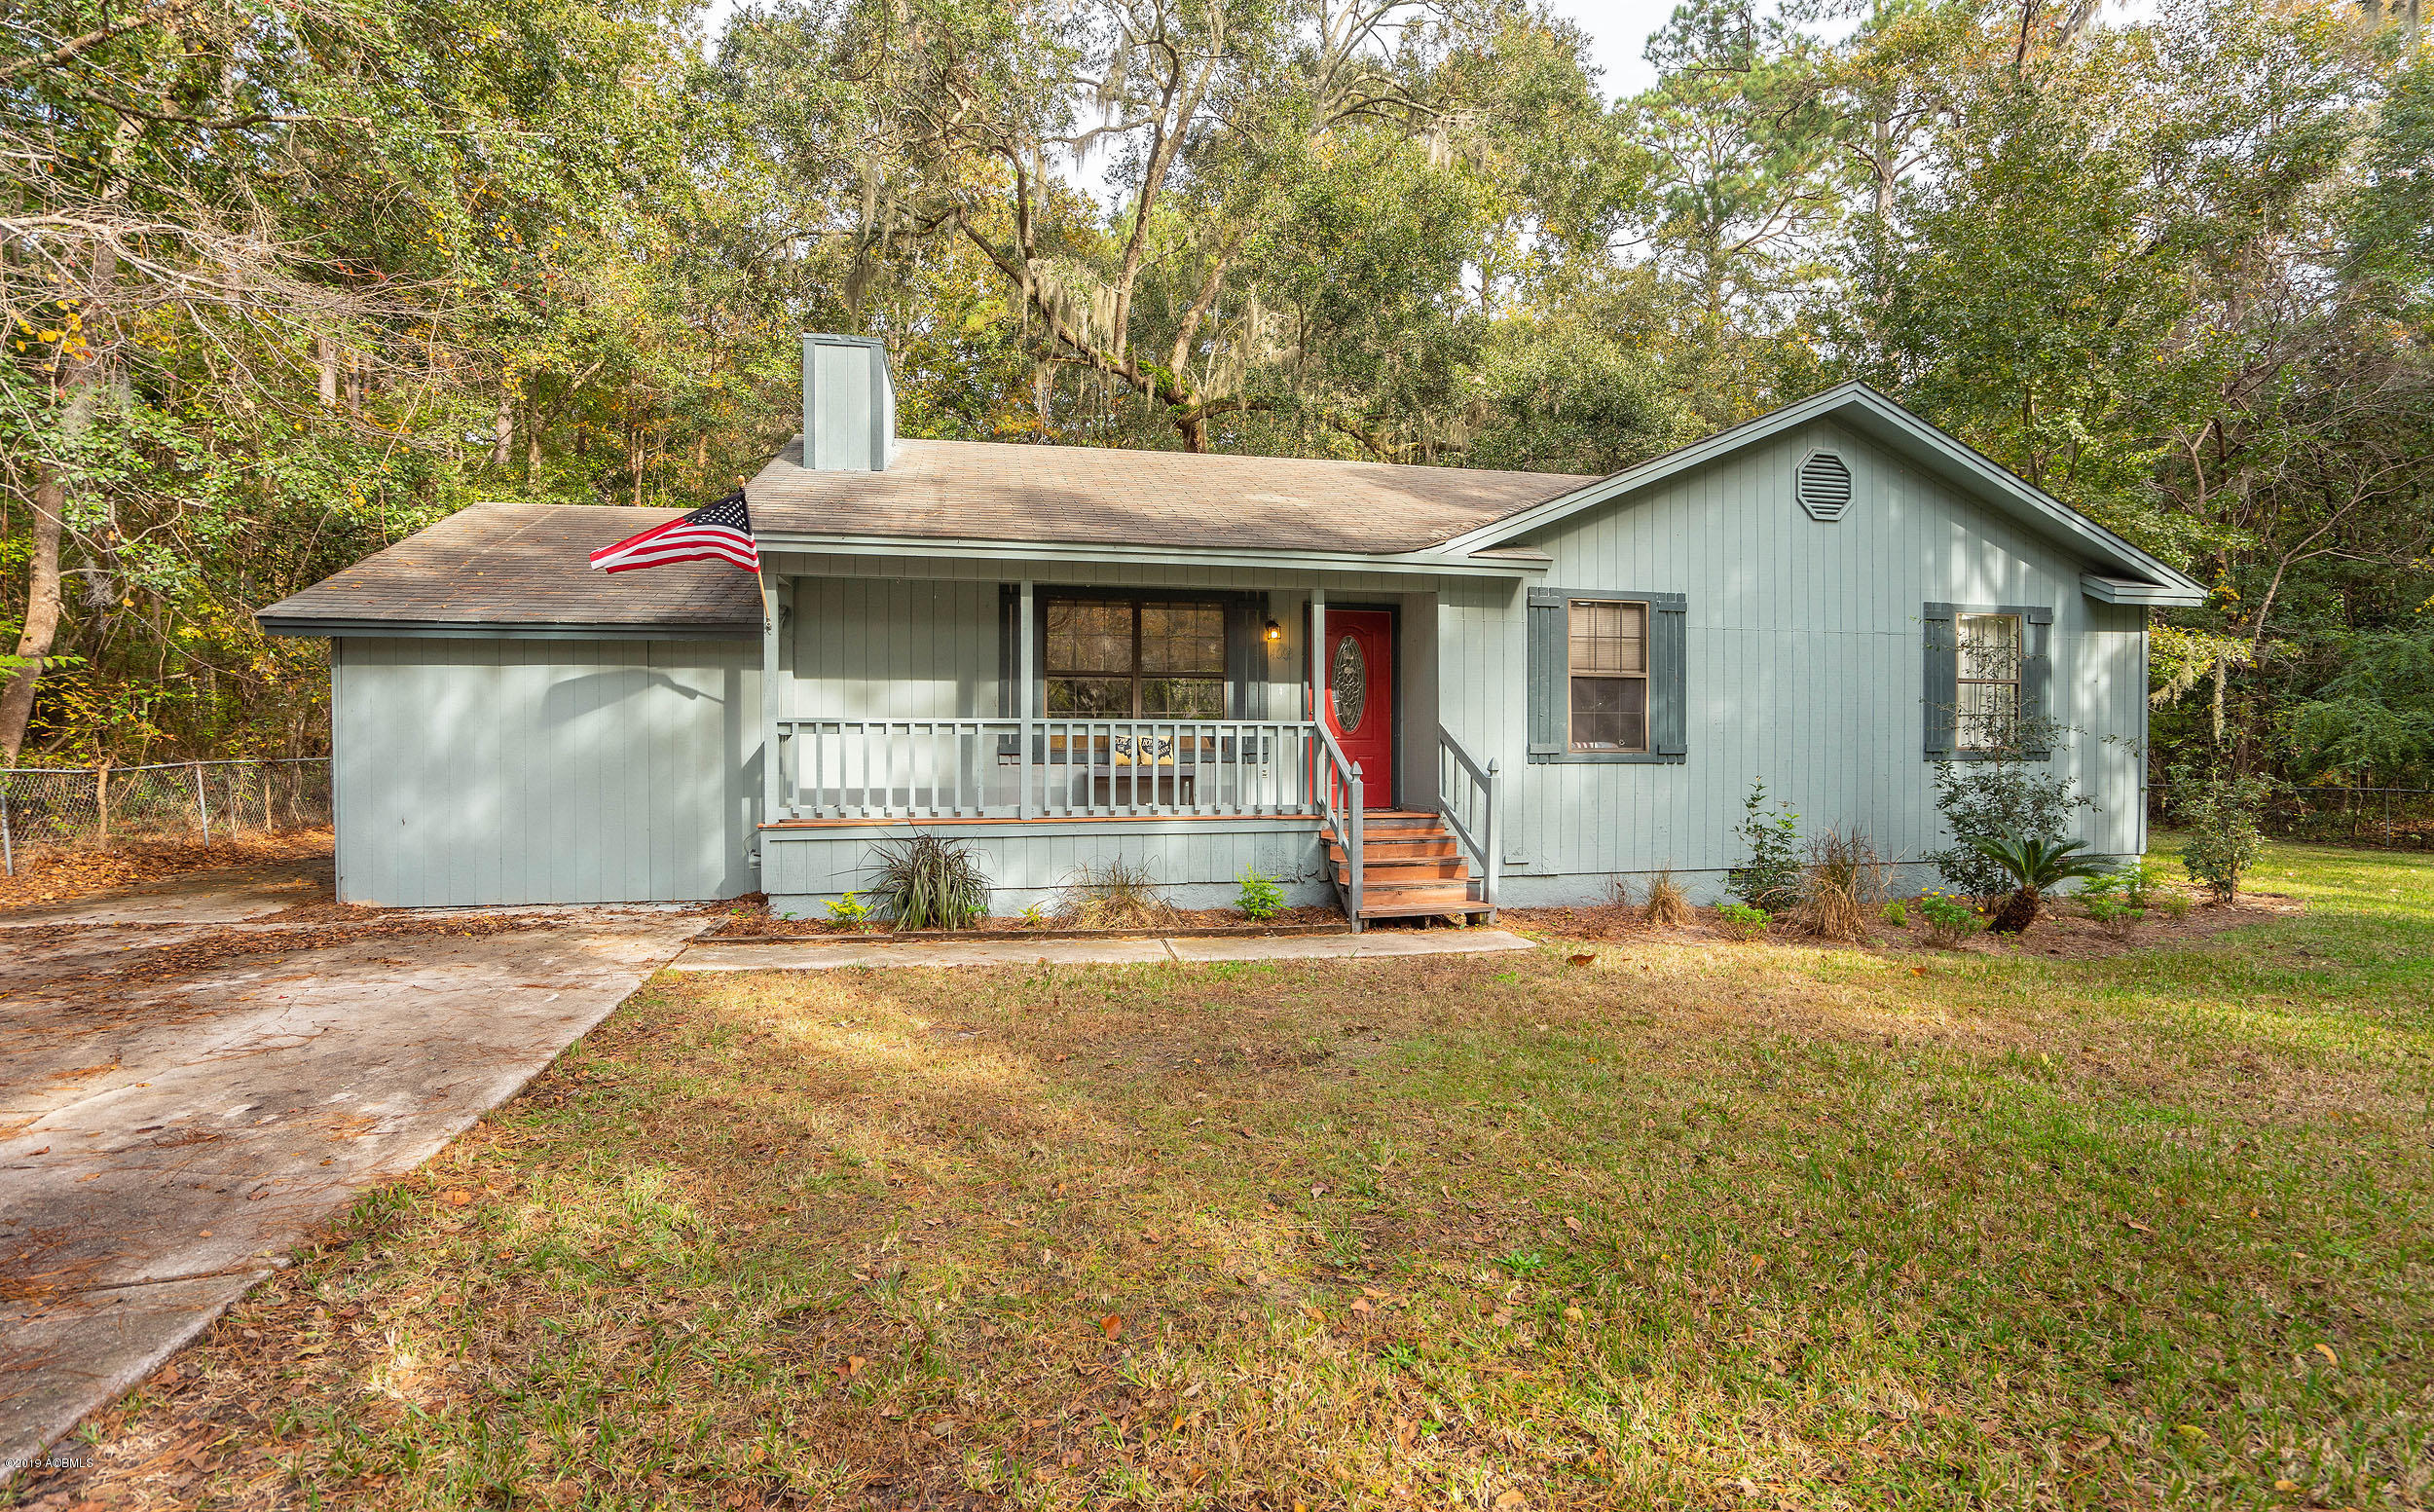 Photo of 1015 Hickory Street, Beaufort, SC 29906